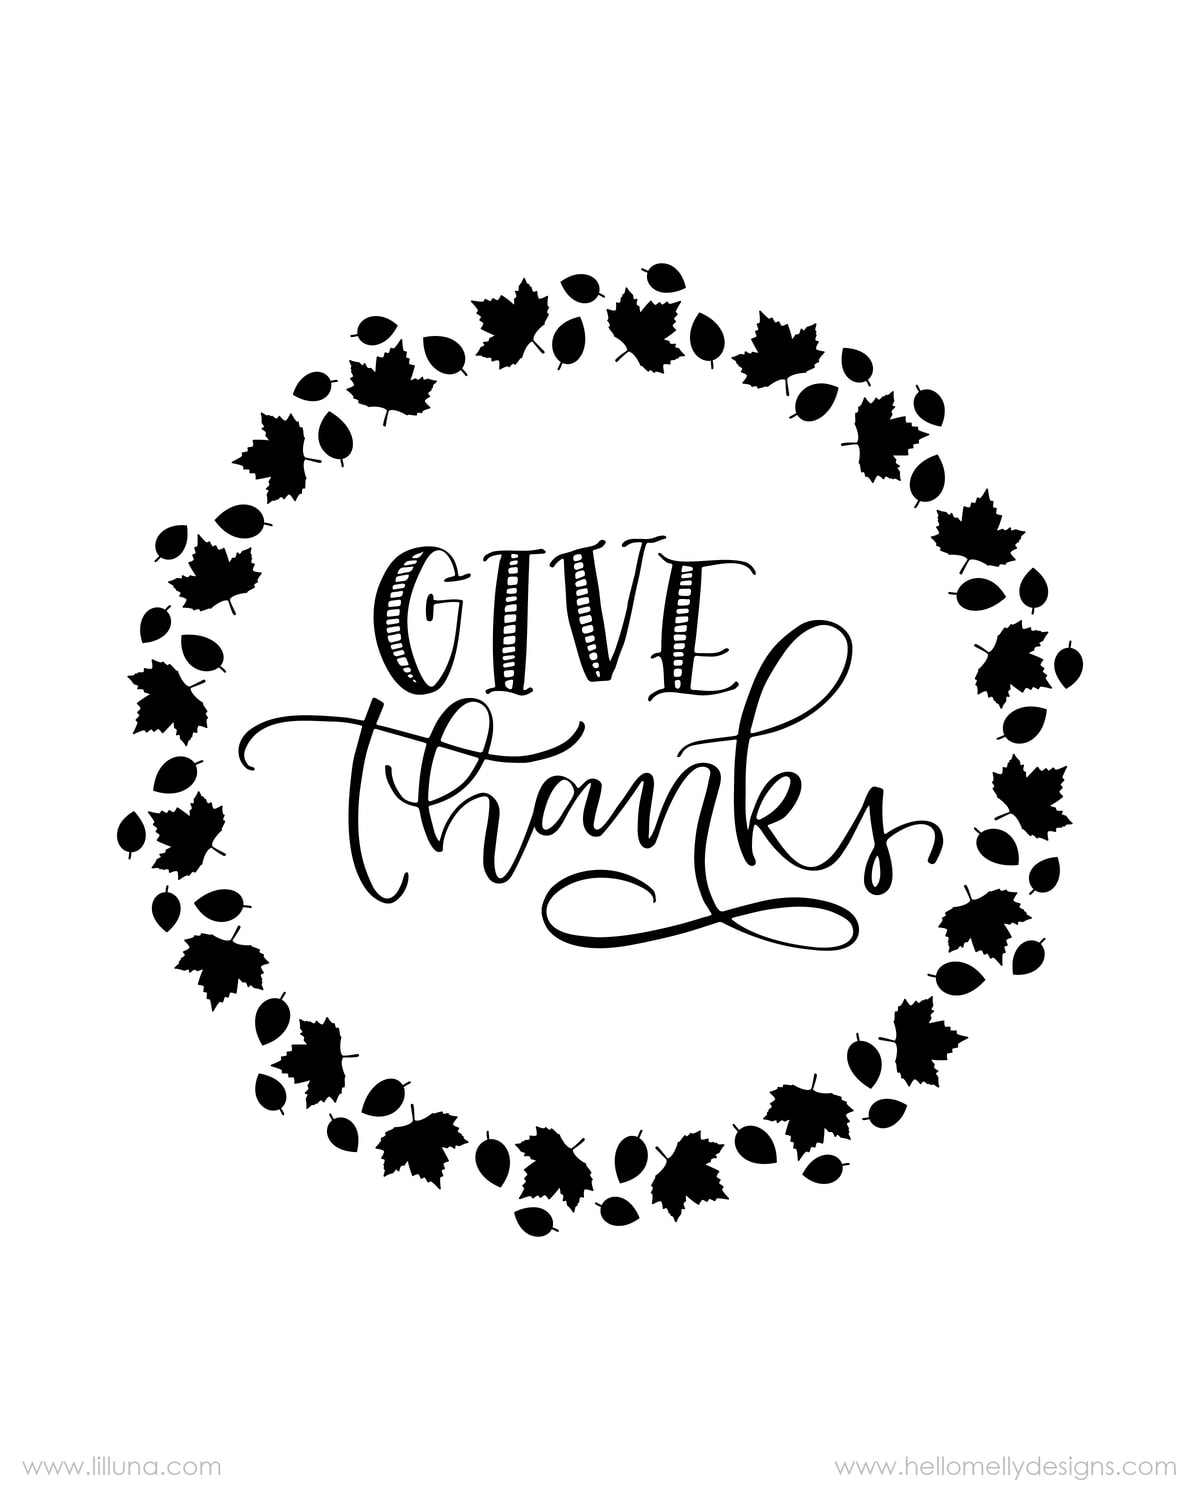 FREE Give Thanks Prints Available To Download In 3 Colors